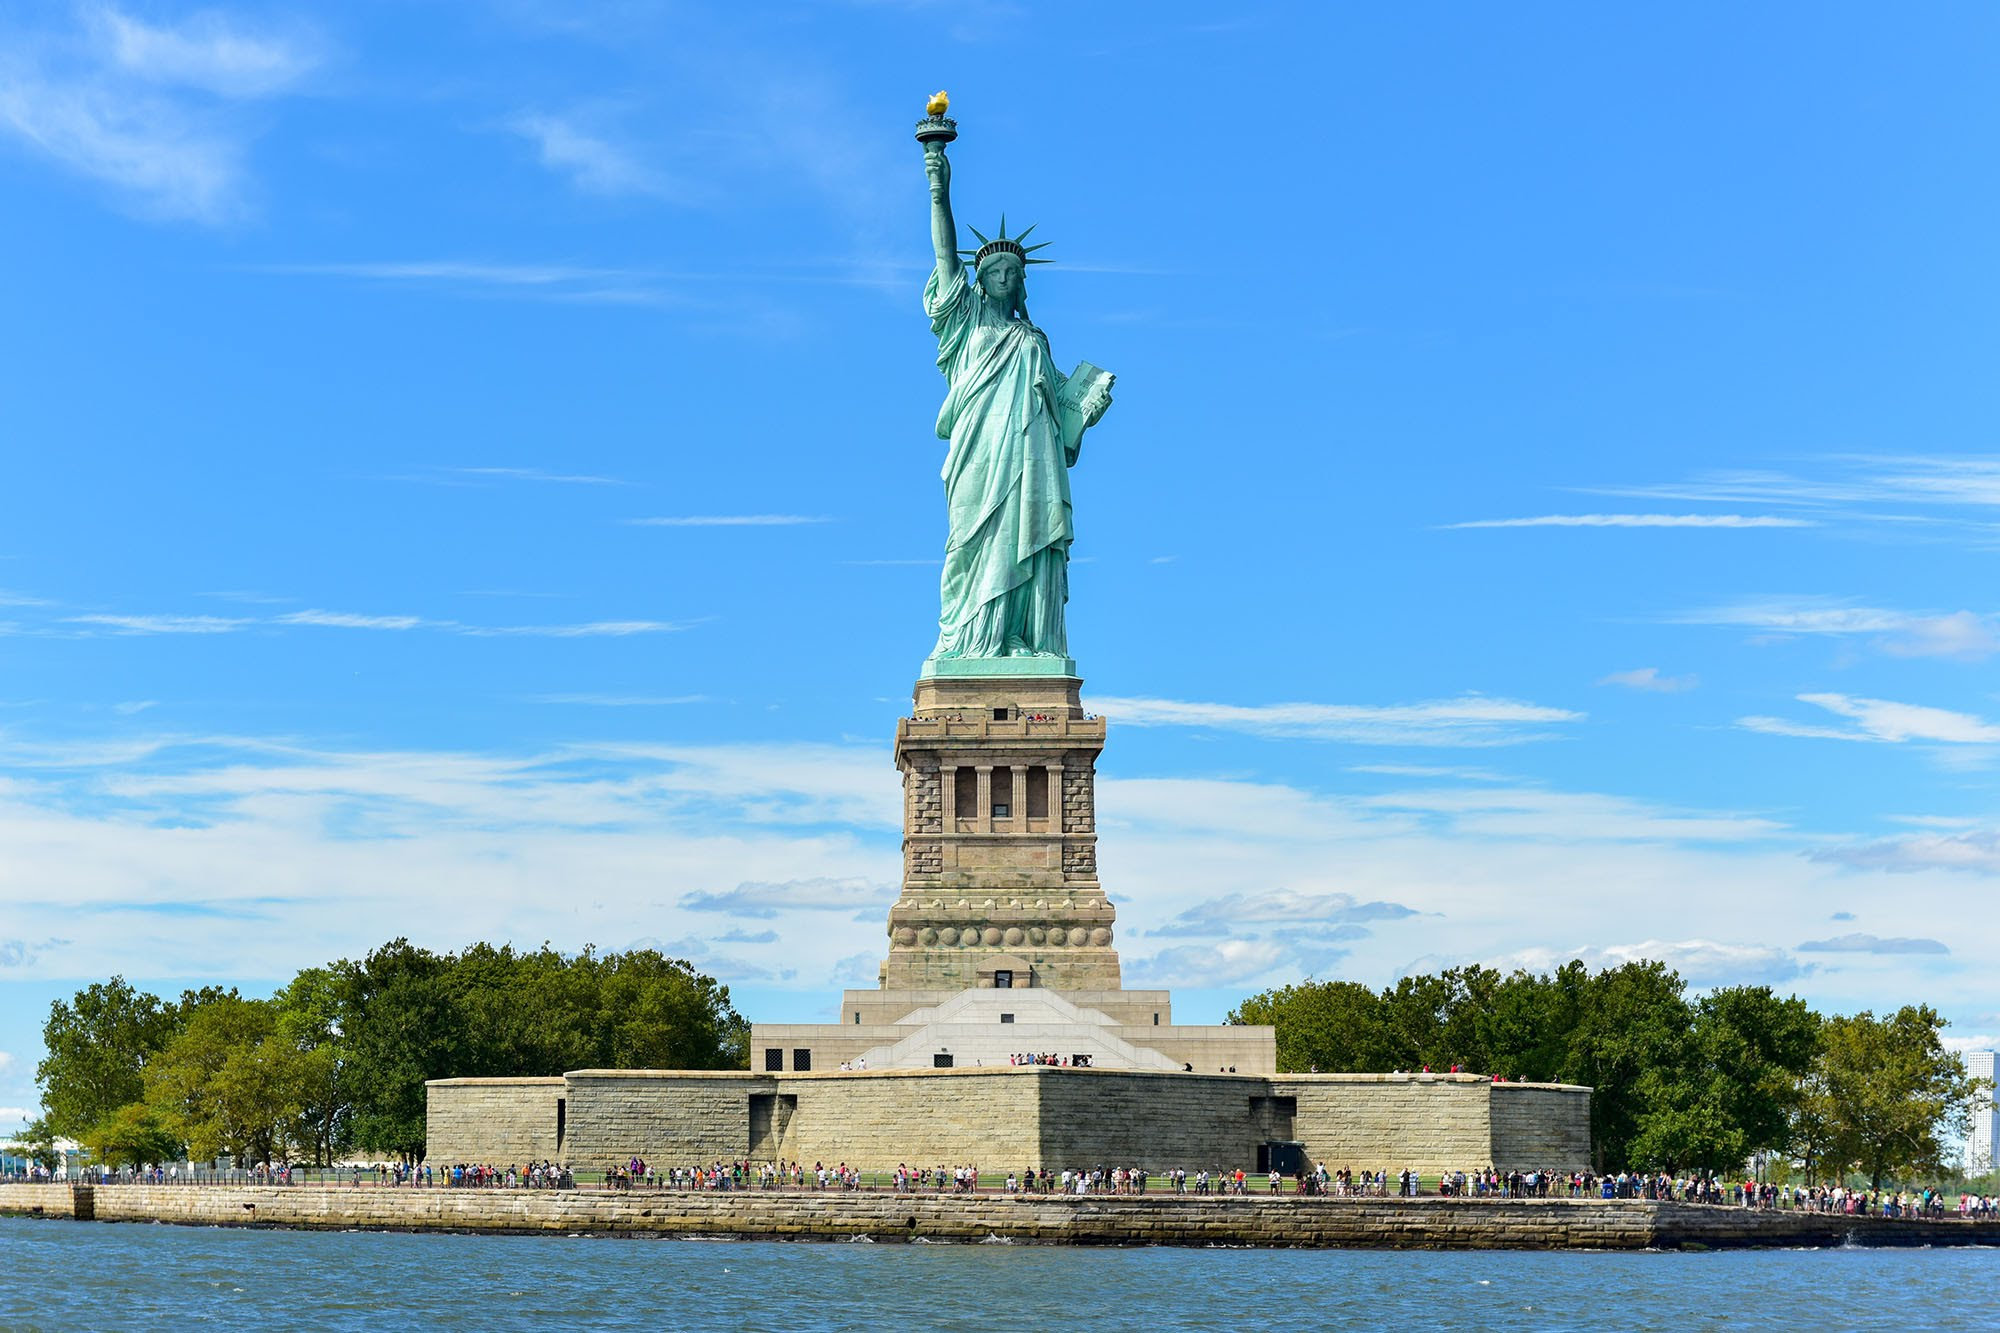 Statue of Liberty - United States Monuments